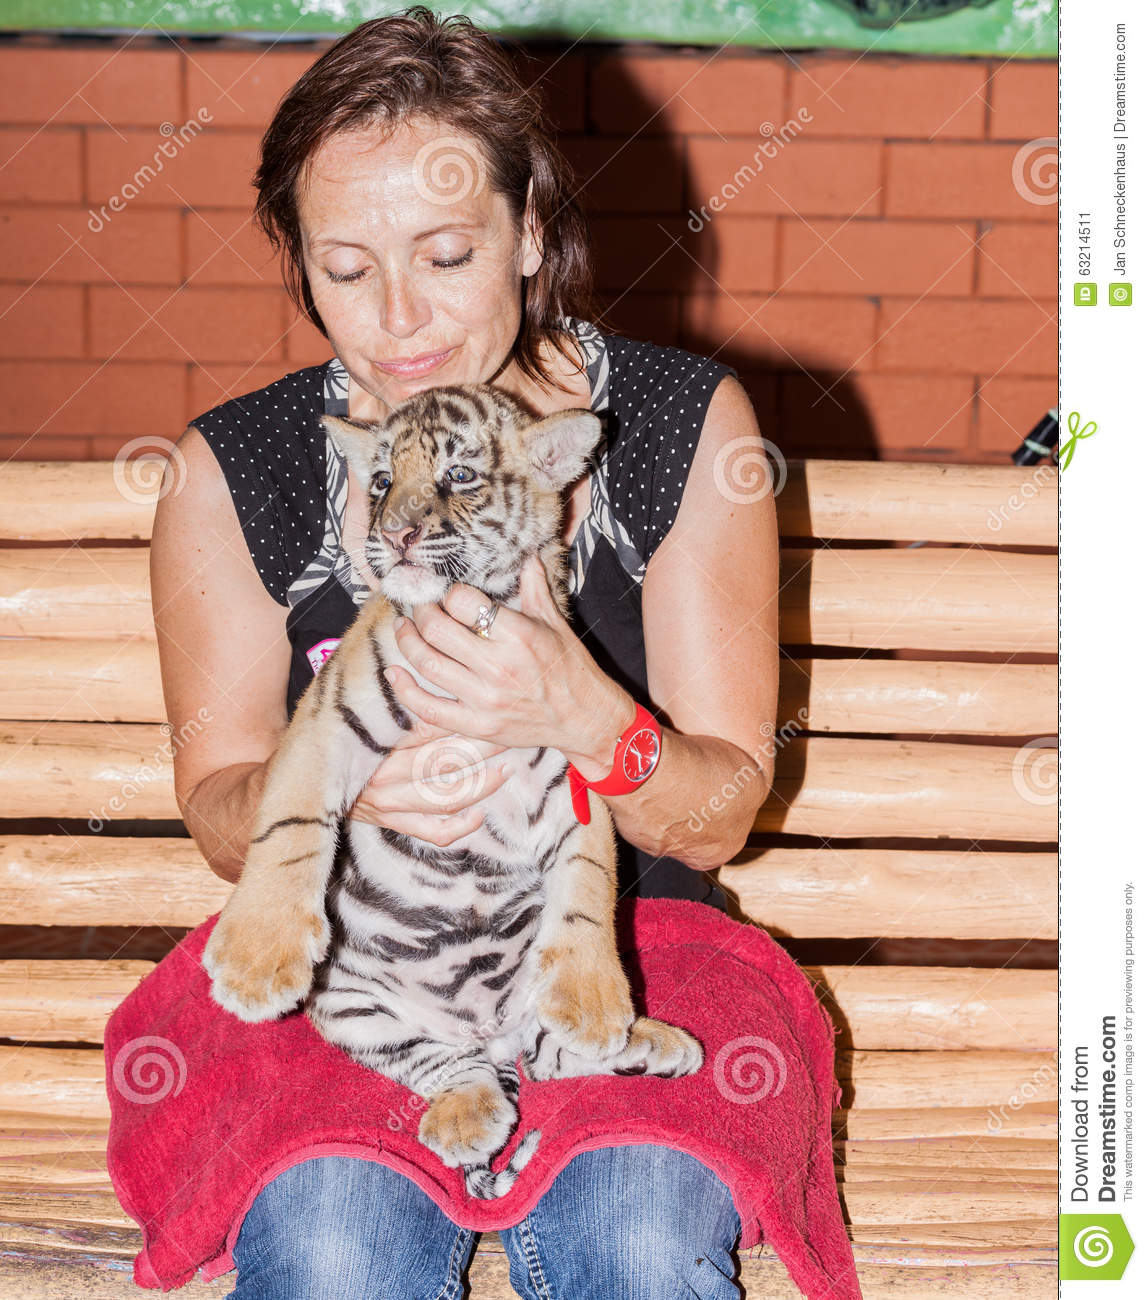 Woman with a tiger cub on her lap